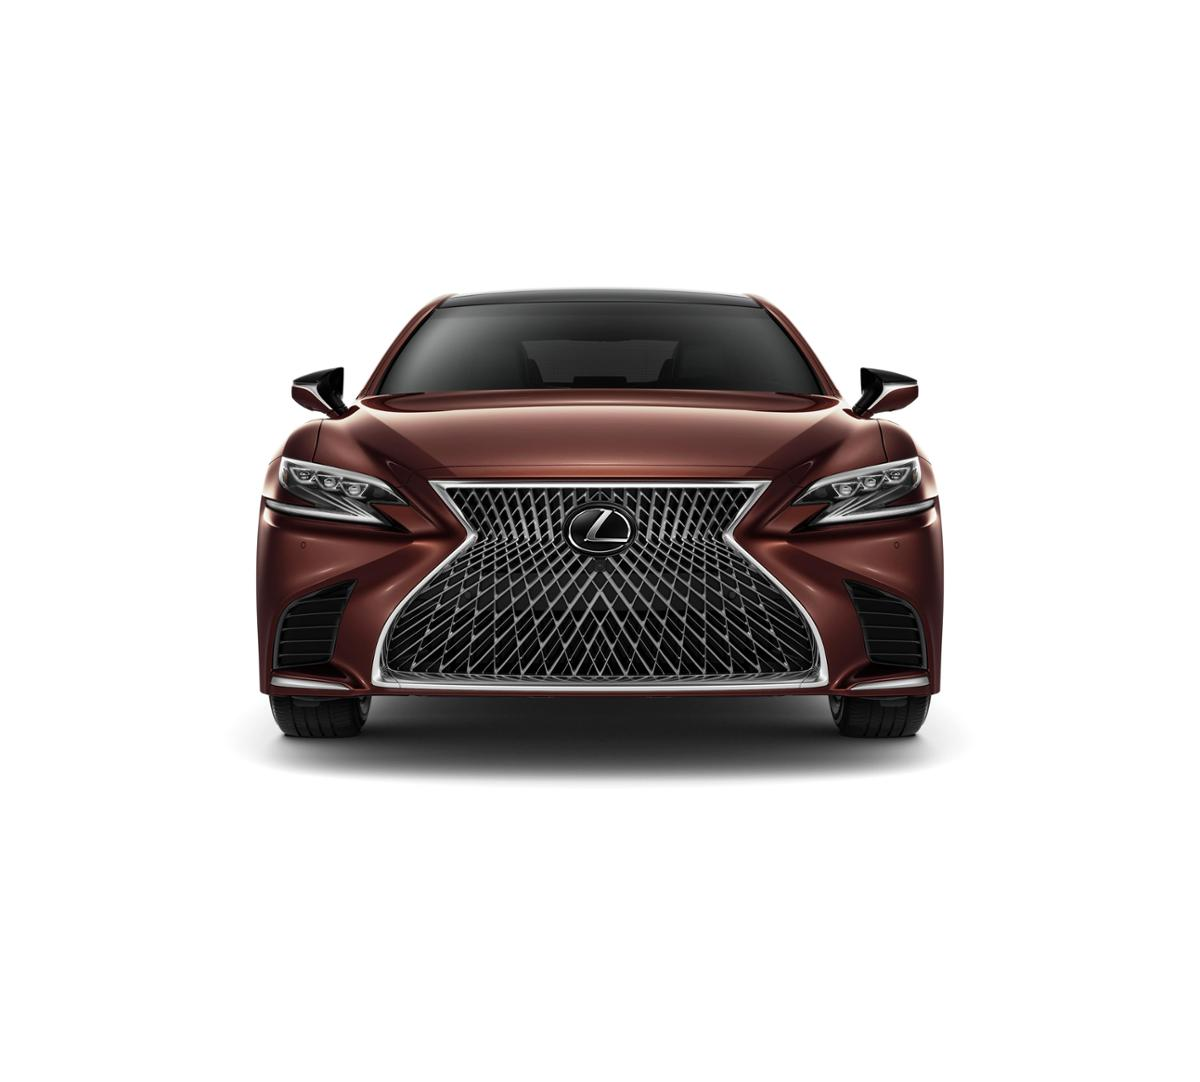 Lexus Of Memphis Used Cars: Towson Autumn Shimmer 2019 Lexus LS 500: New Car For Sale